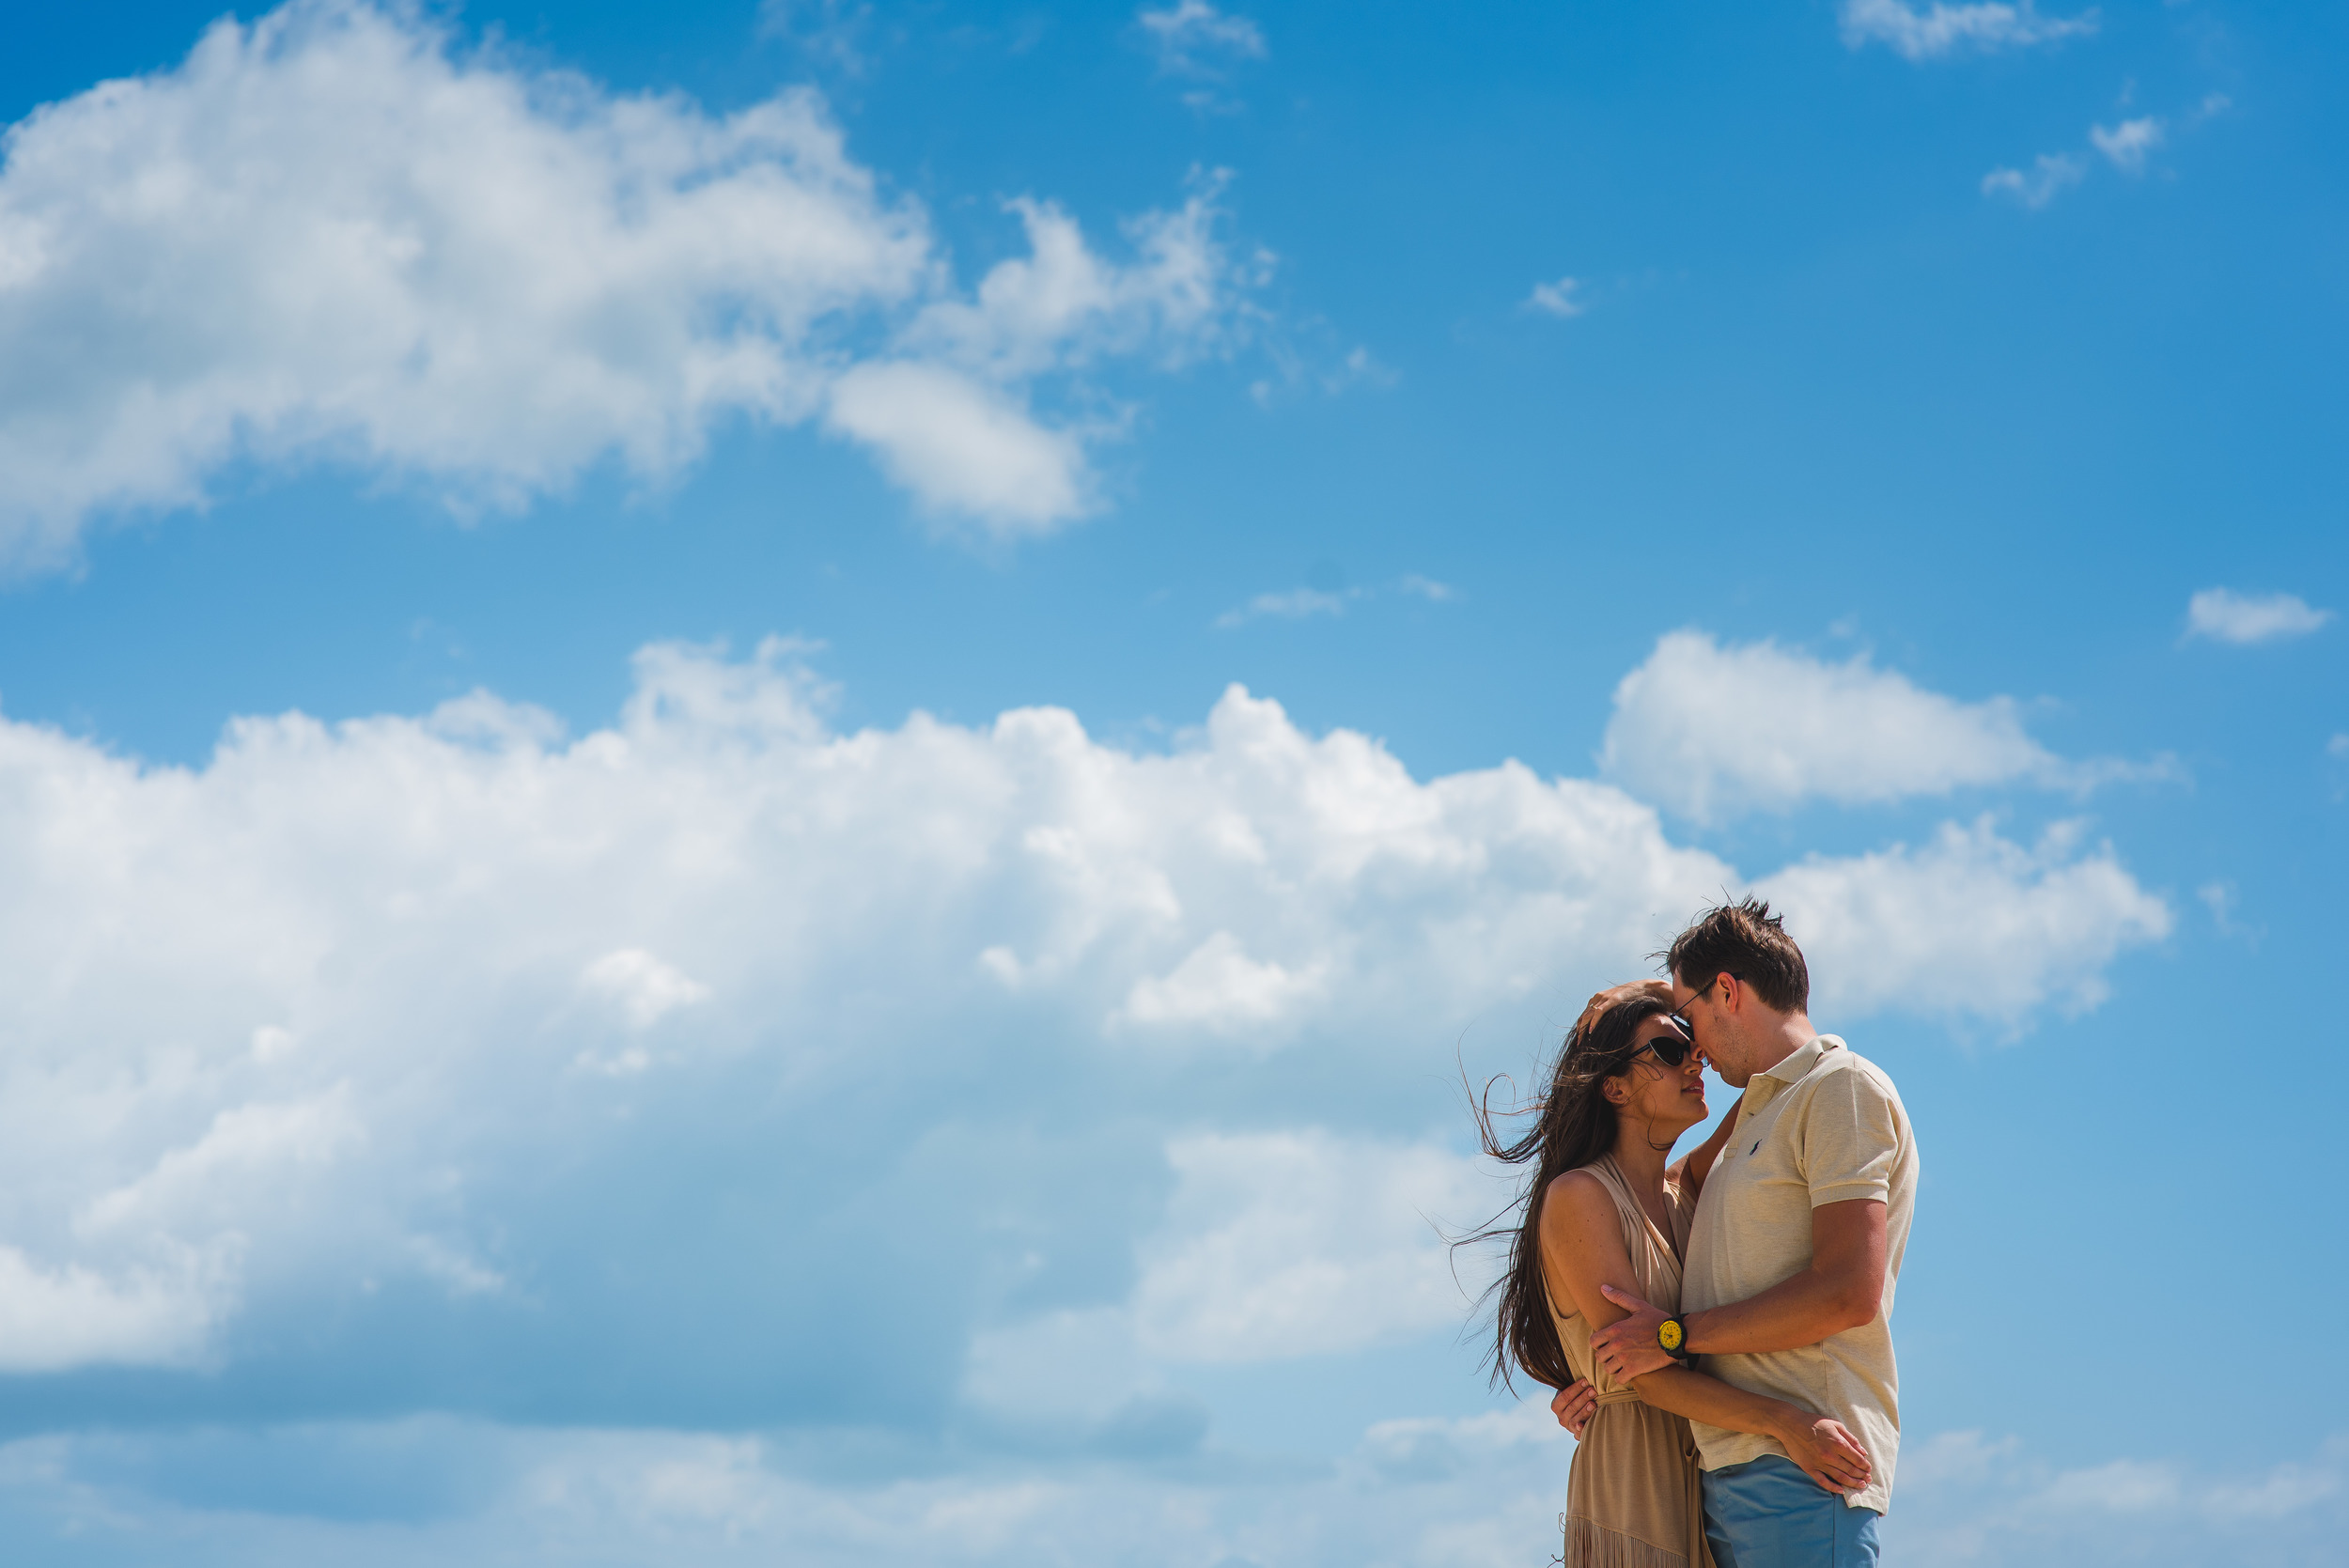 Mauritius Wedding Photographer Mantas Kubilinskas-28.jpg